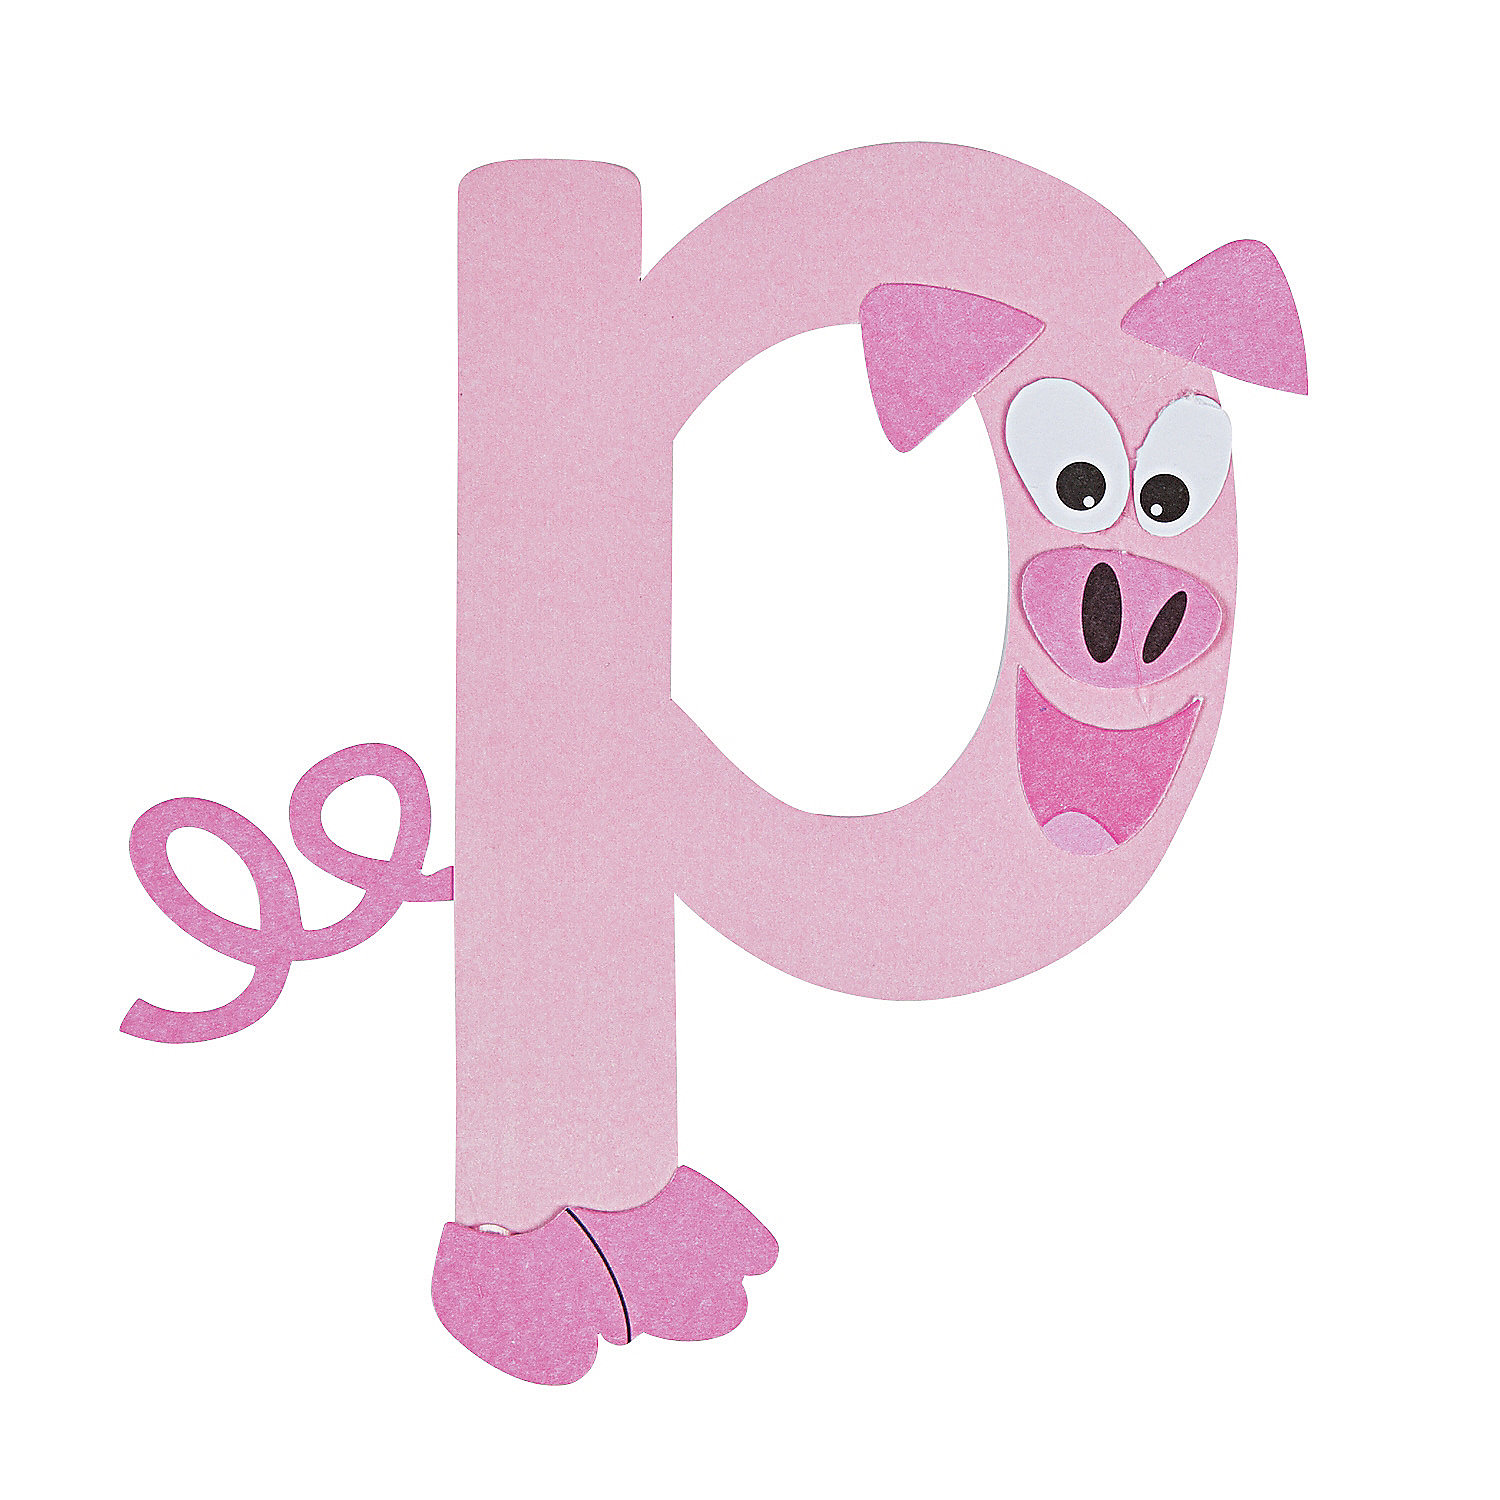 Letter P Crafts İdeas For Preschool Preschool And